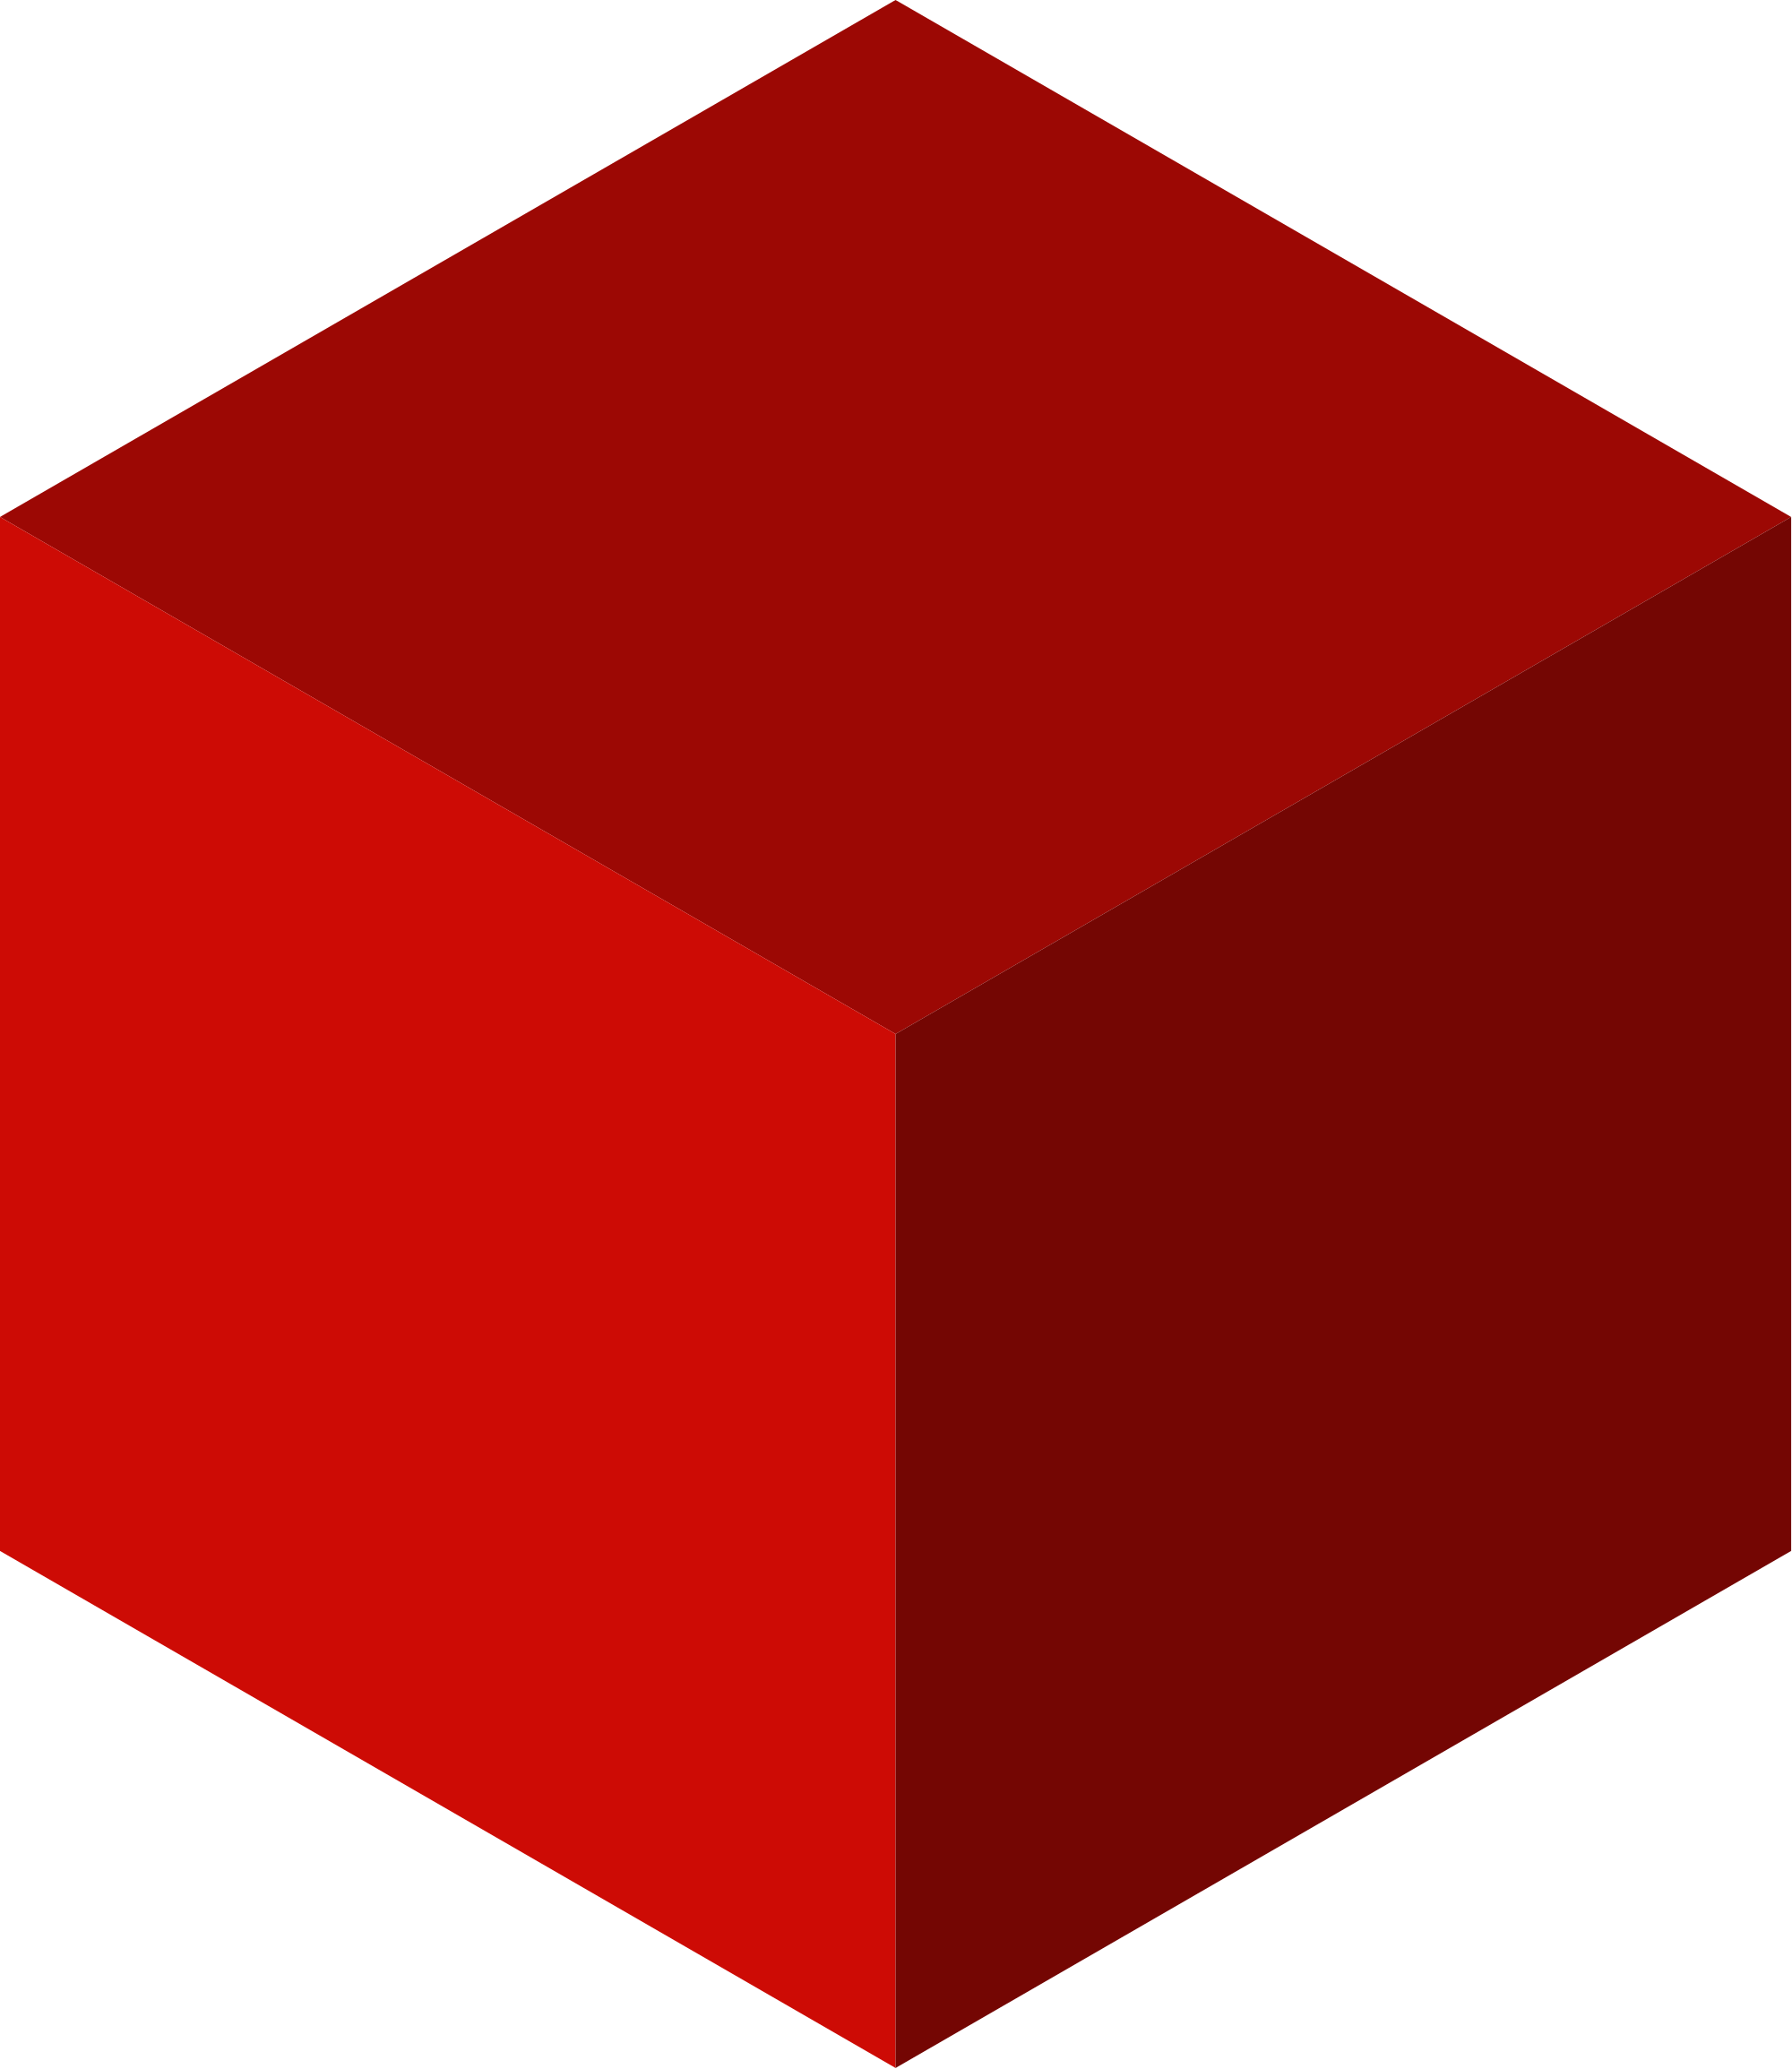 Cube clip red. File uniform polyhedron axonometric